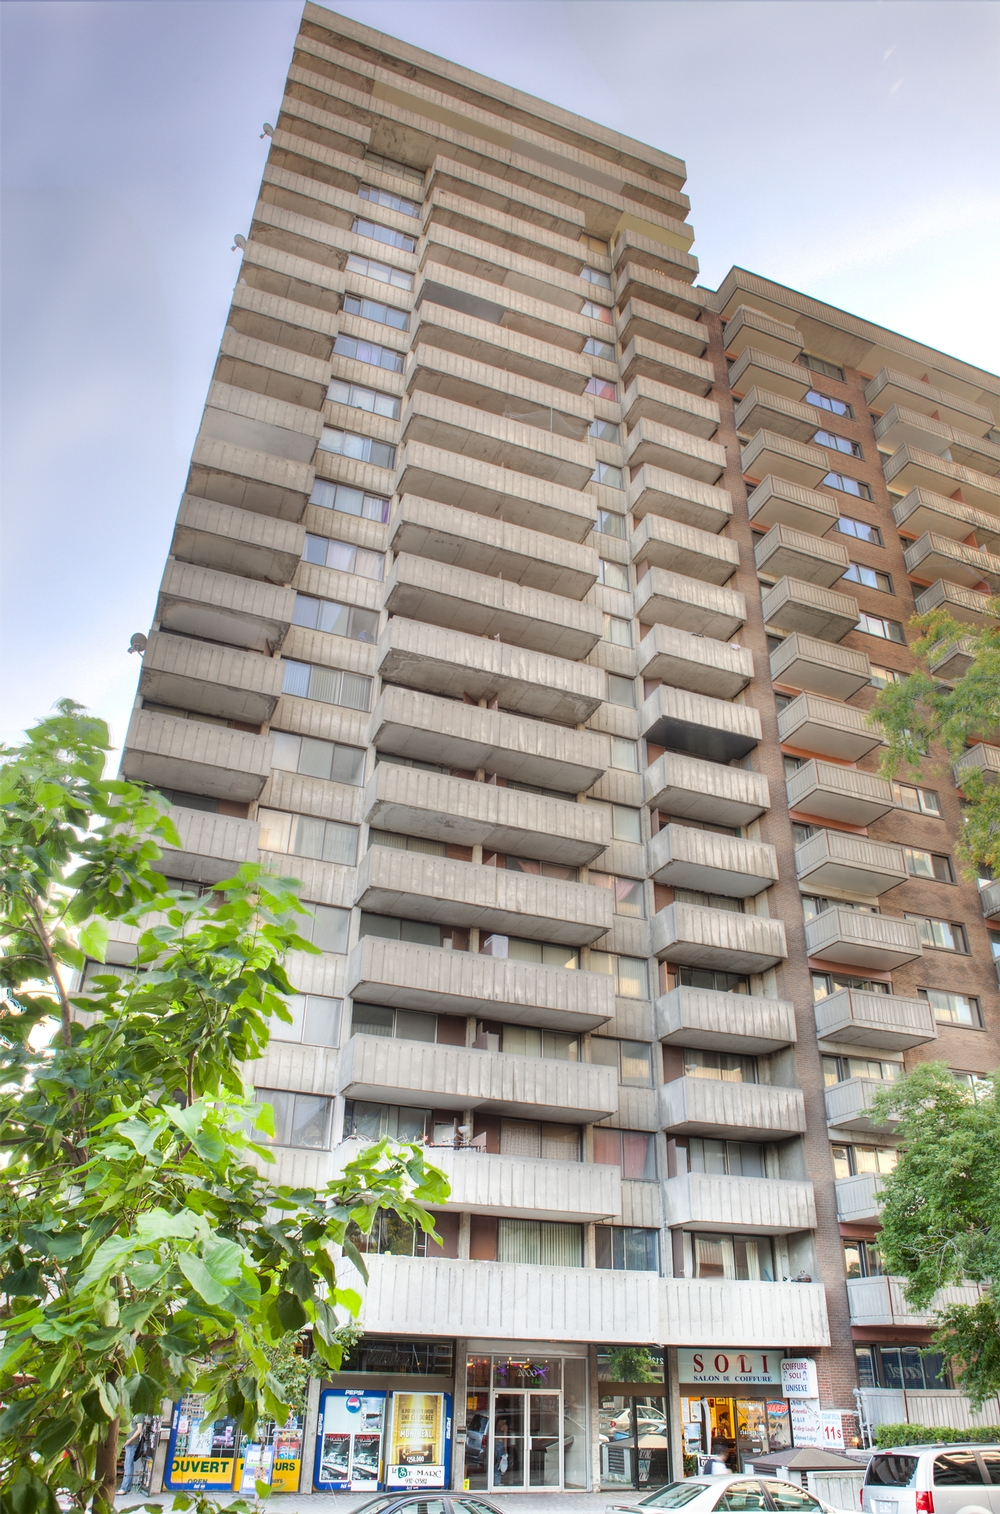 Studio / Bachelor Apartments for rent in Montreal (Downtown) at St Marc - Photo 01 - RentQuebecApartments – L350779